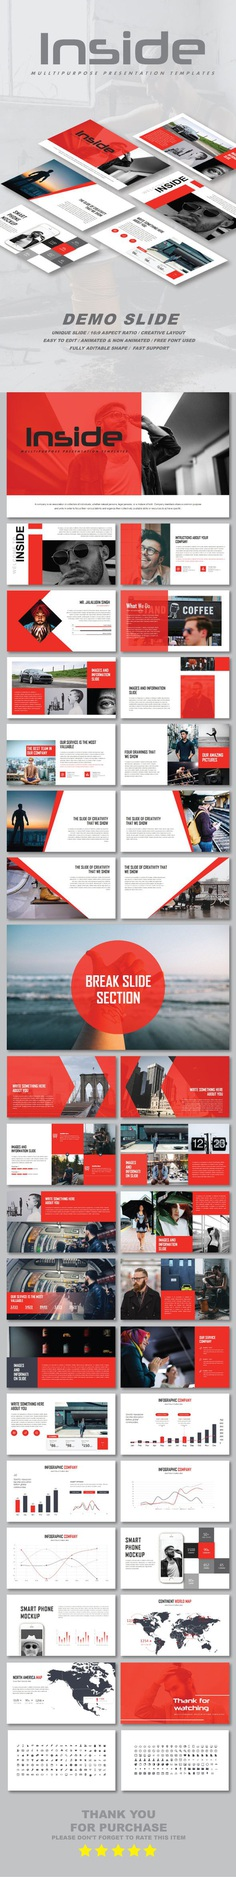 Inside Multipurpose Google Slide Templates - Google Slides Presentation Templates